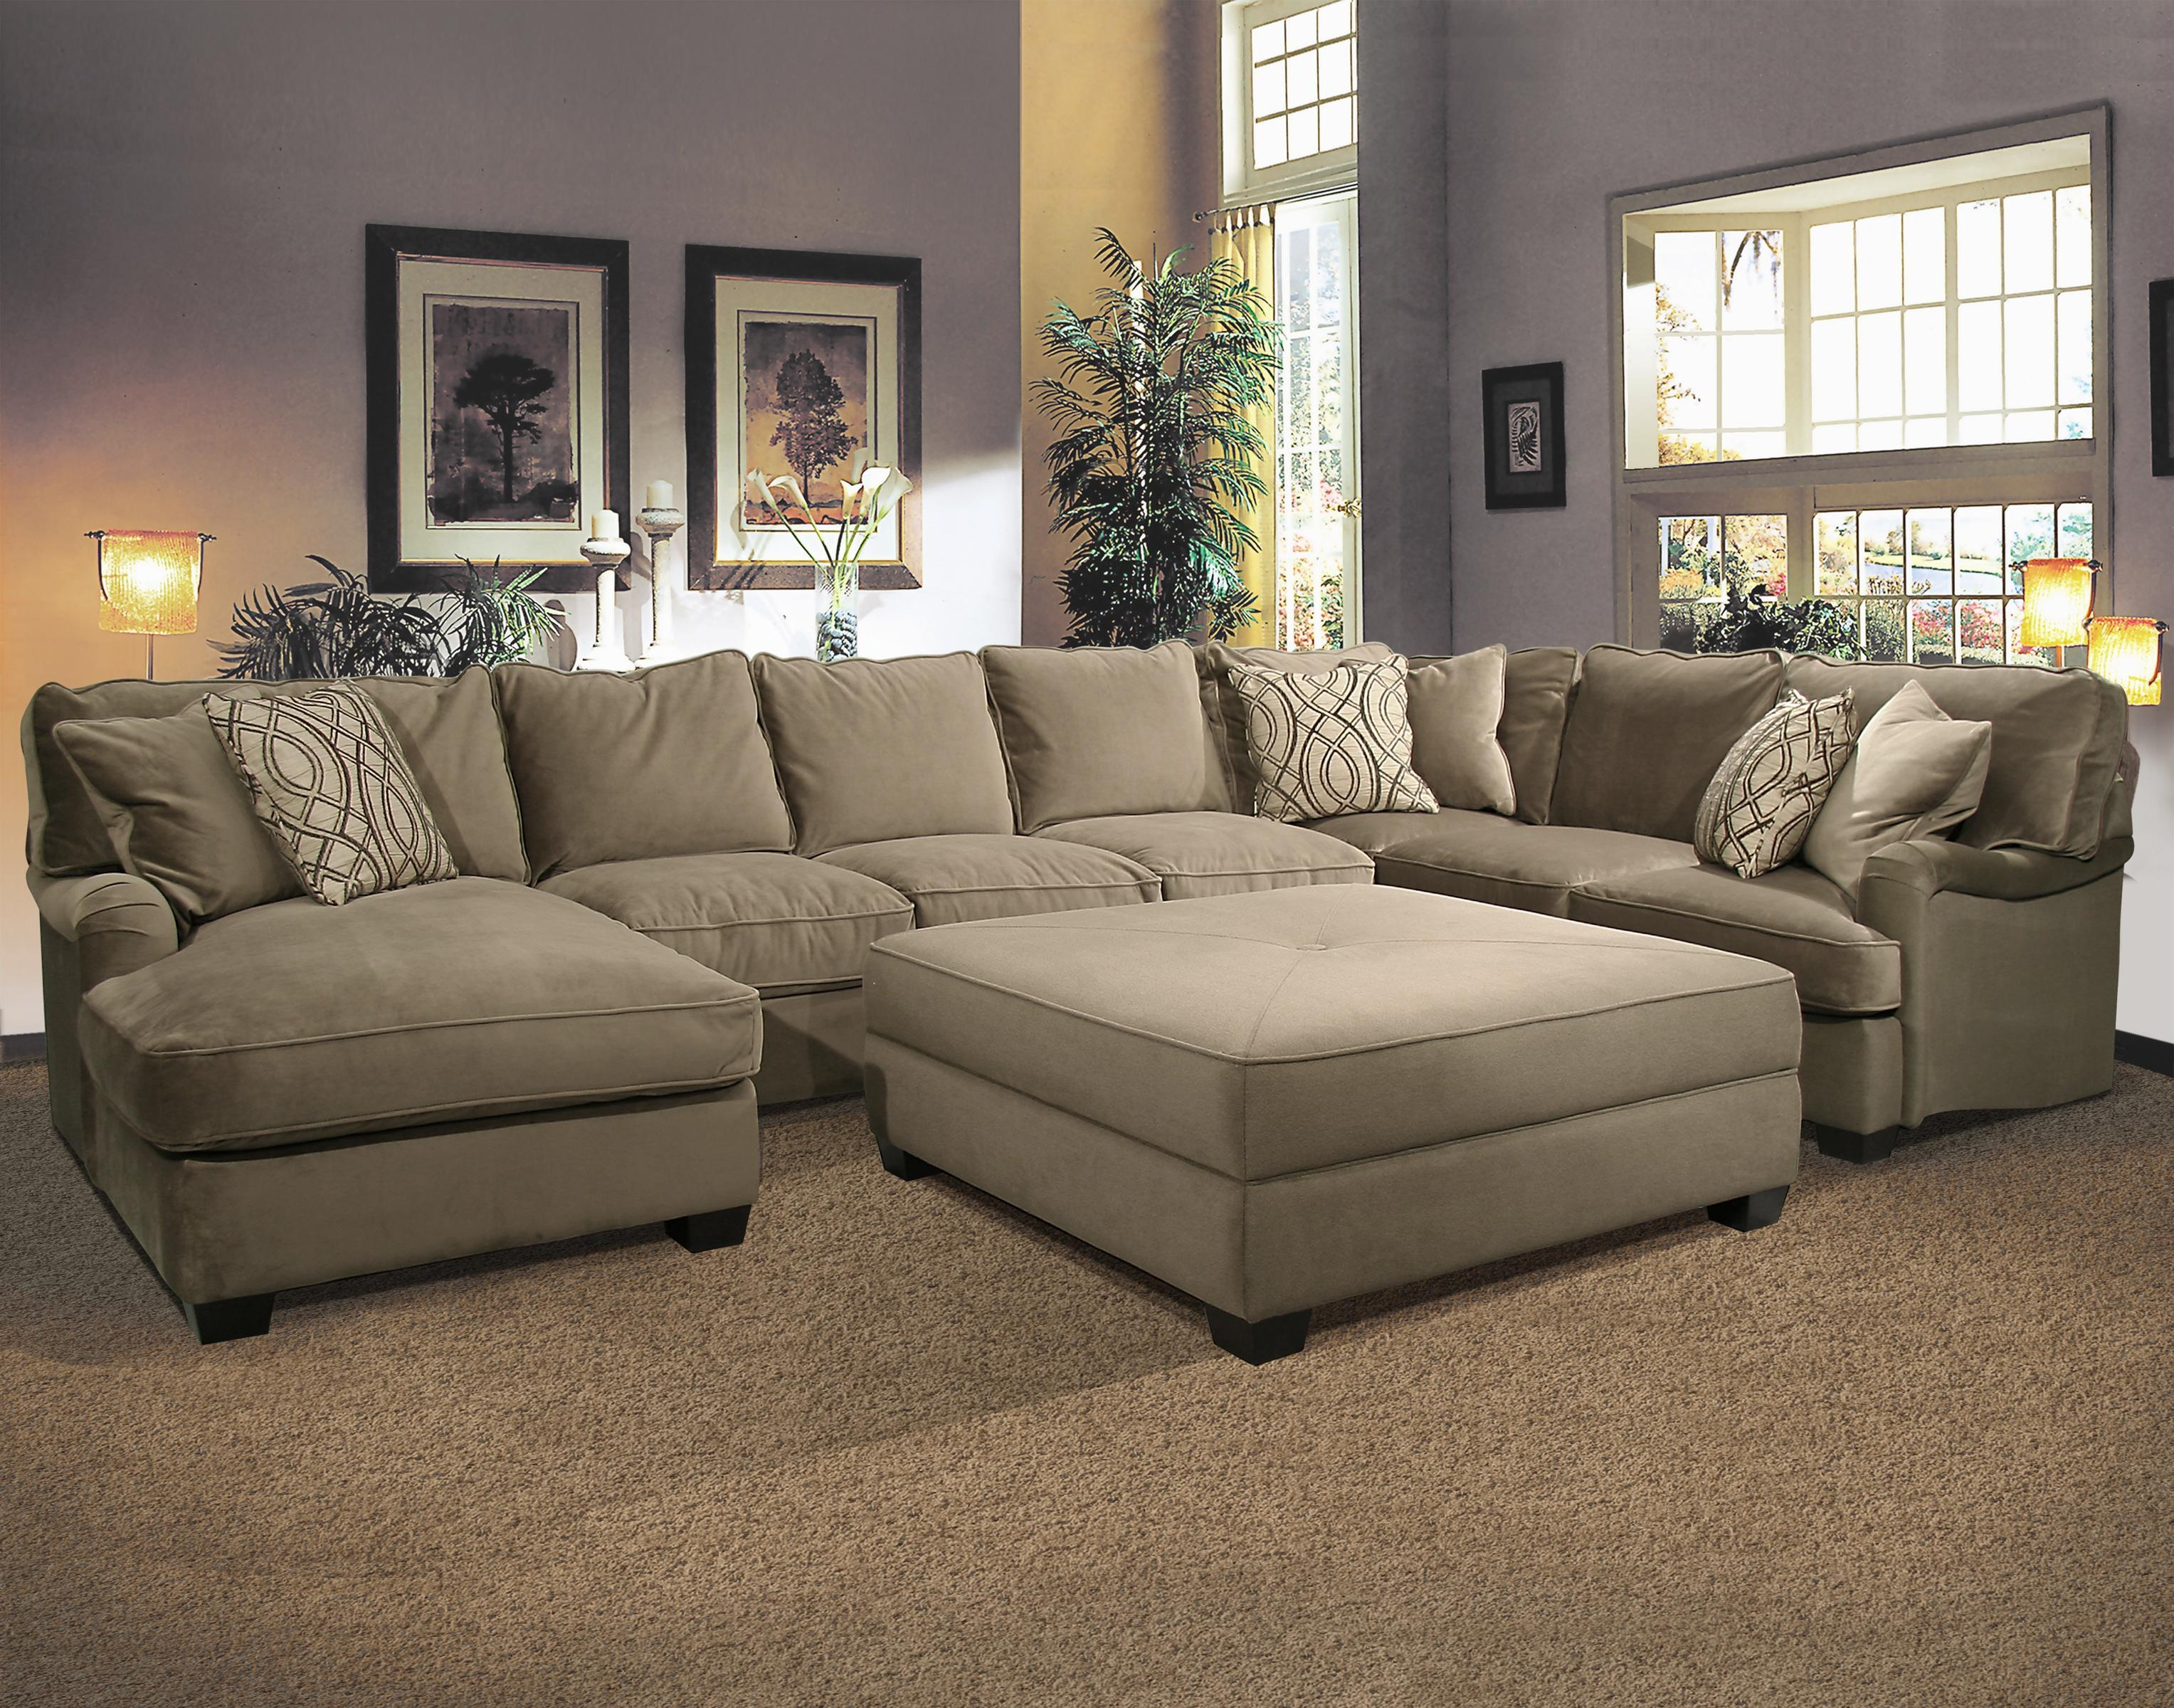 Ottoman : Simple Furniture U Mocha Fabric Sectional Sofa With In Cloth Sectional Sofas (View 20 of 21)